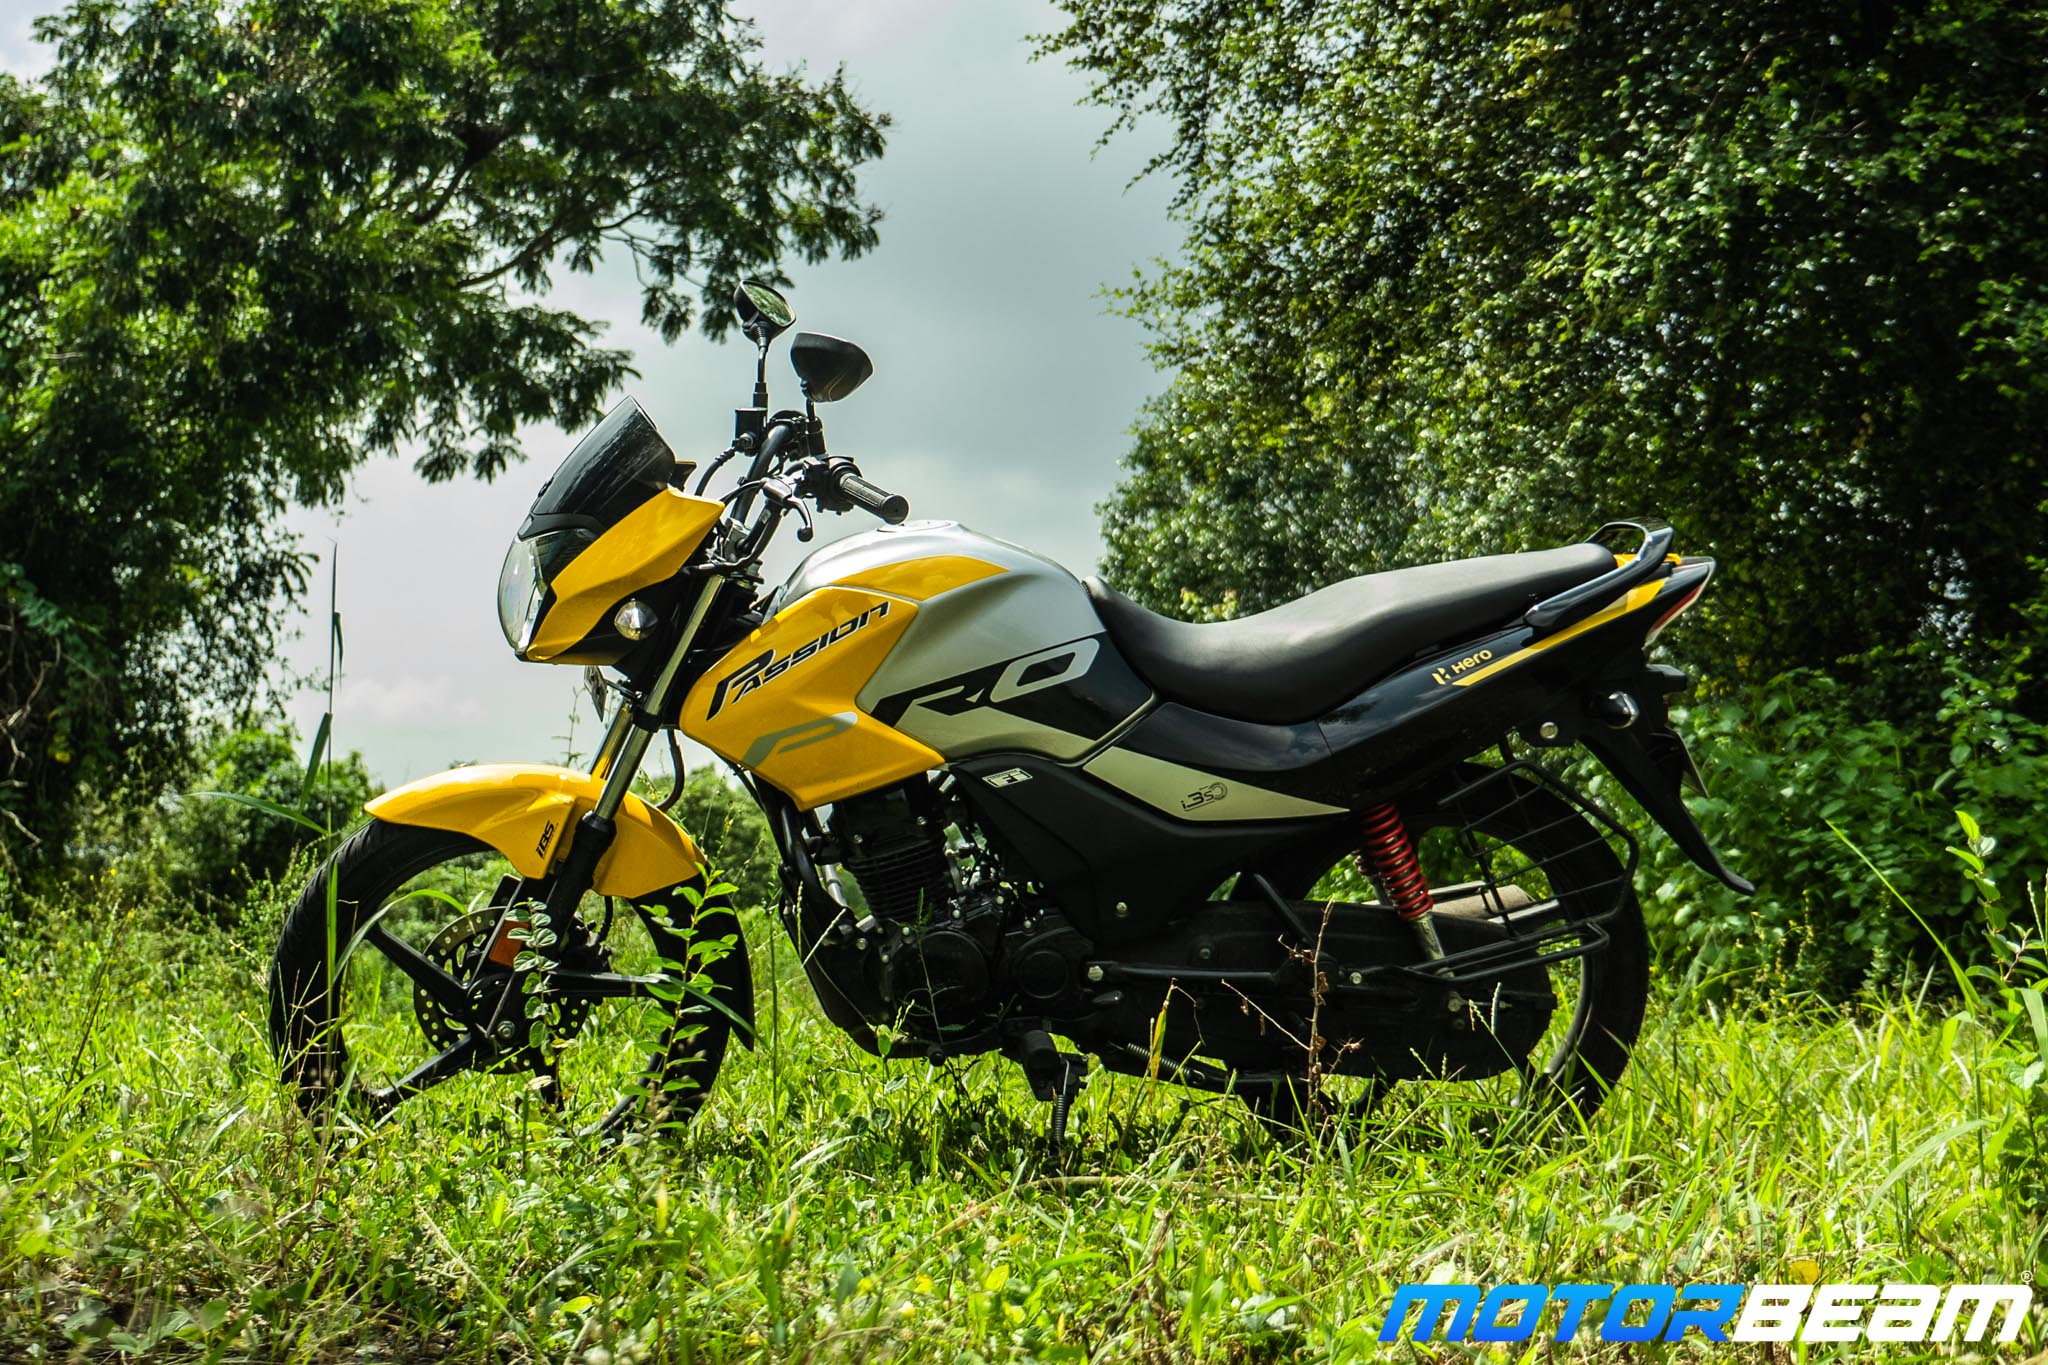 2020 Hero Passion Pro Review 7